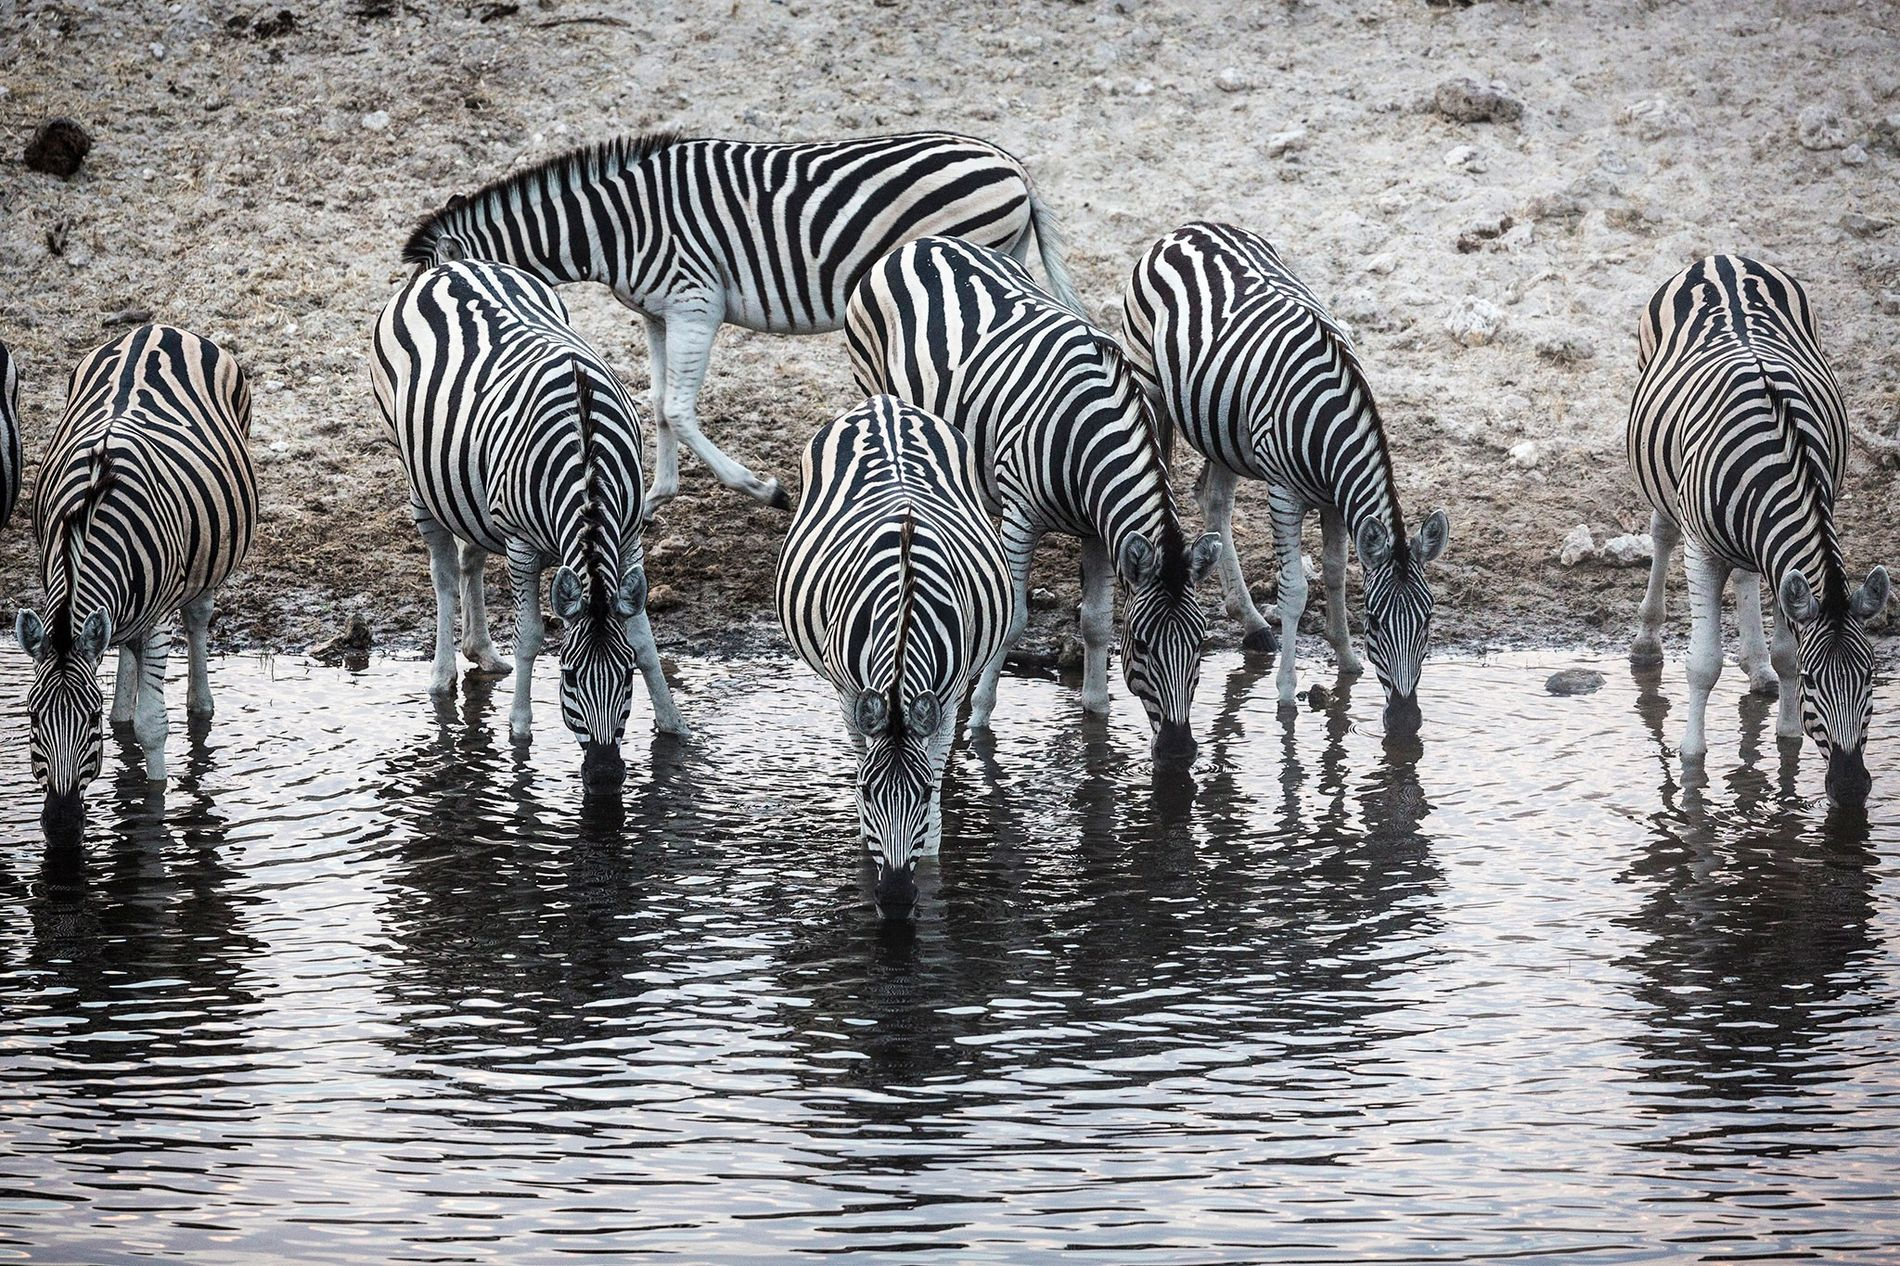 Zebras drink water from the Okavango Delta. During seasonal flooding, the delta provides lush wetlands for ...